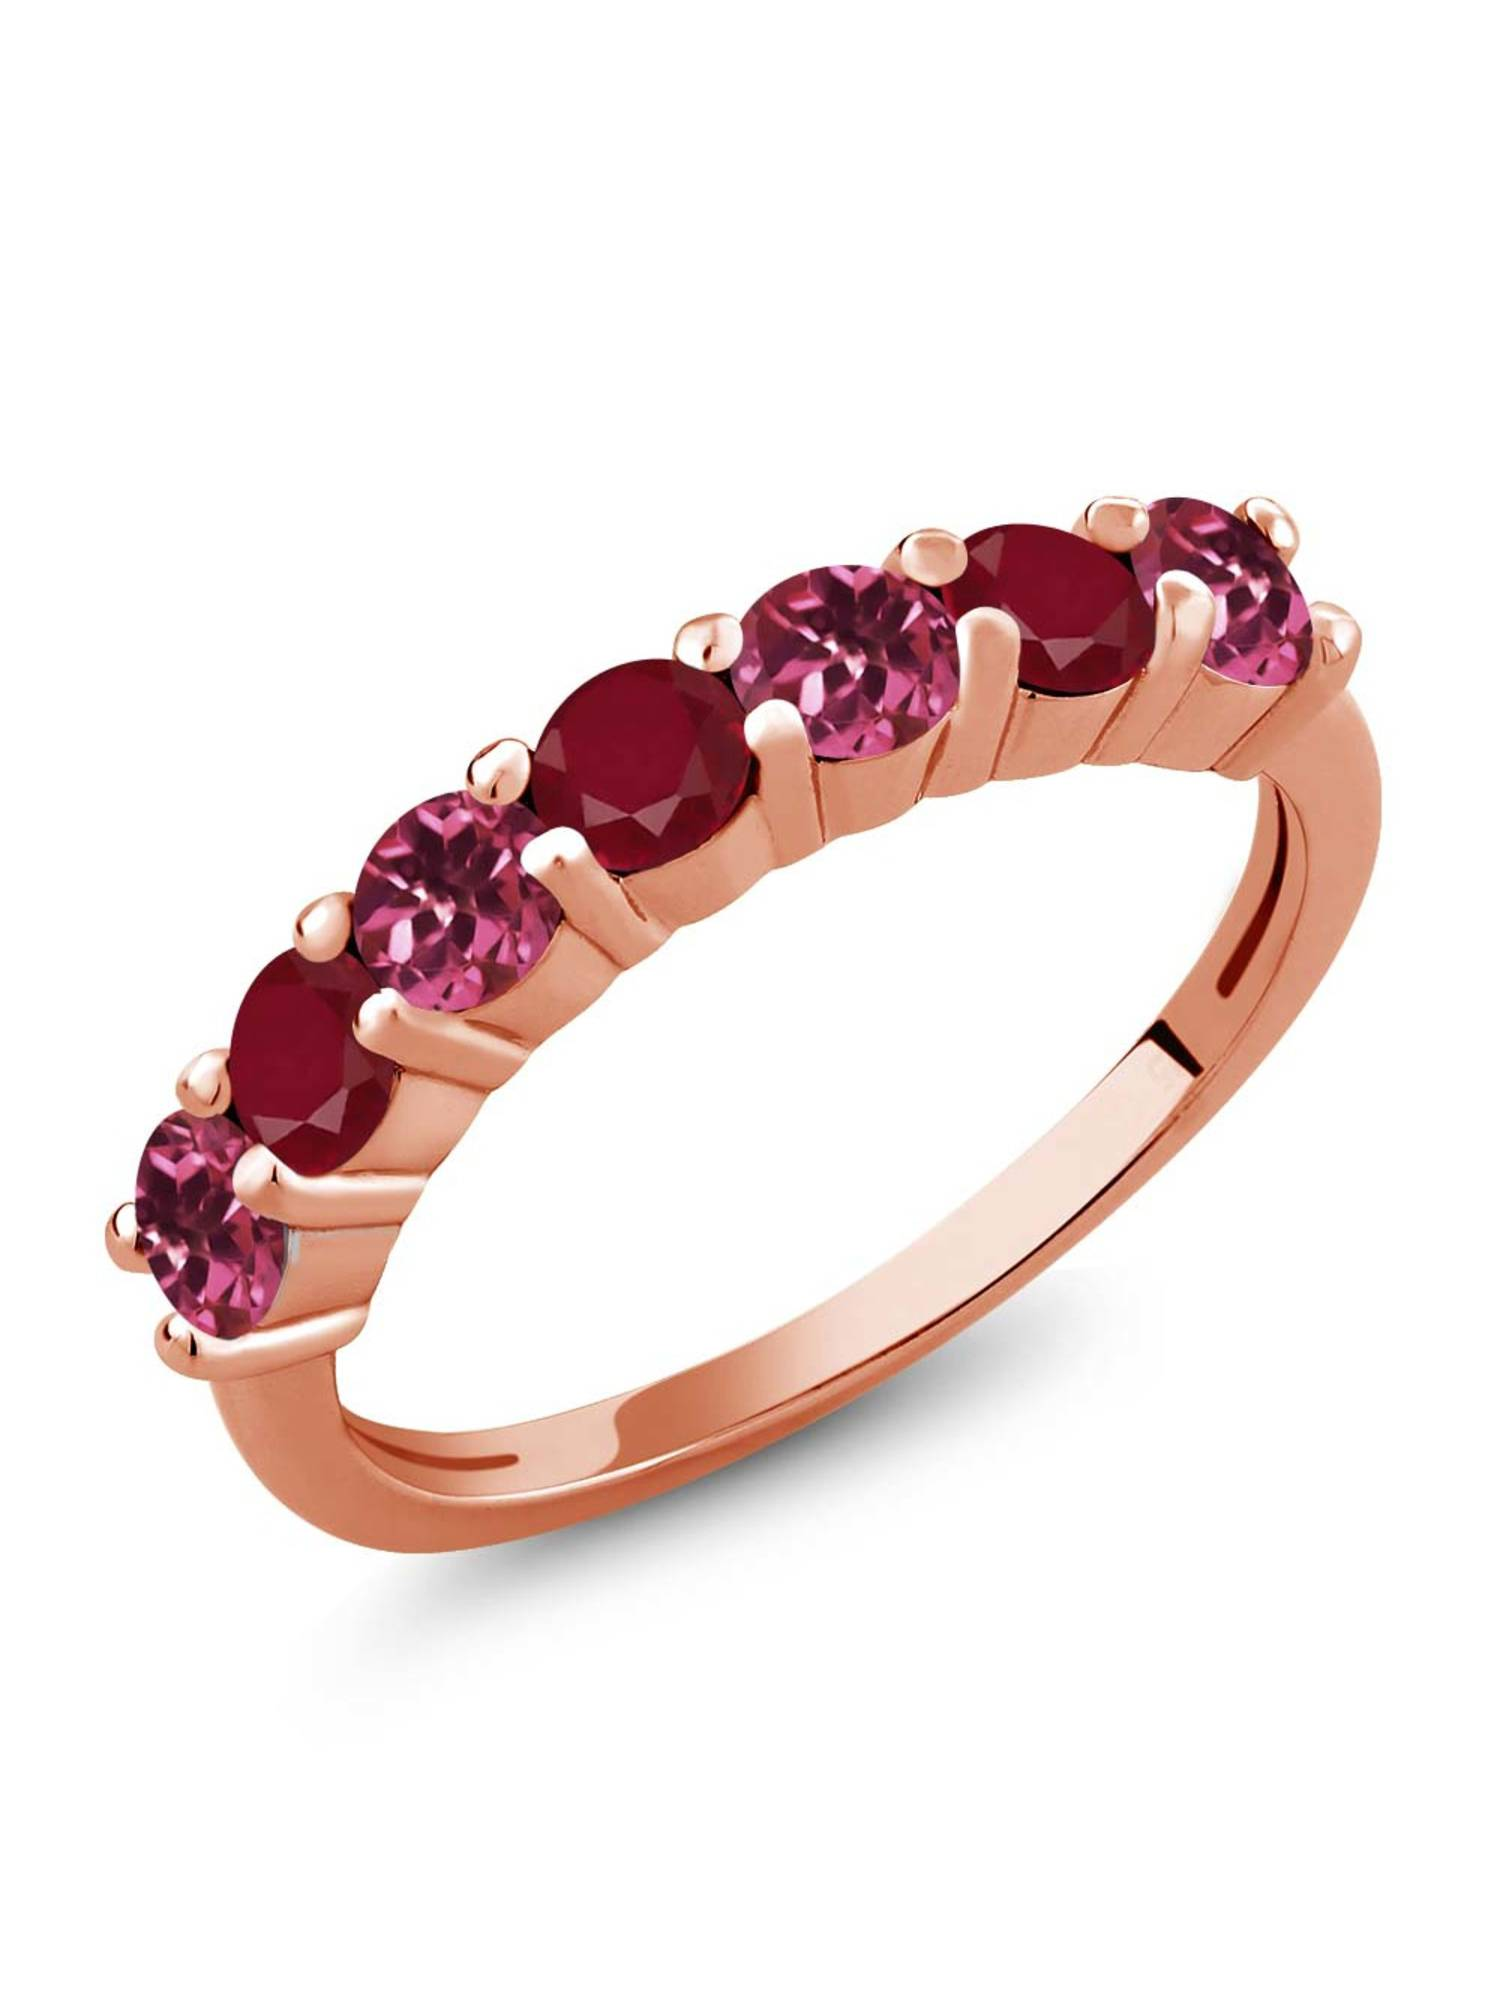 1.26 Ct Round Pink Tourmaline Red Ruby 18K Rose Gold Plated Silver Ring by